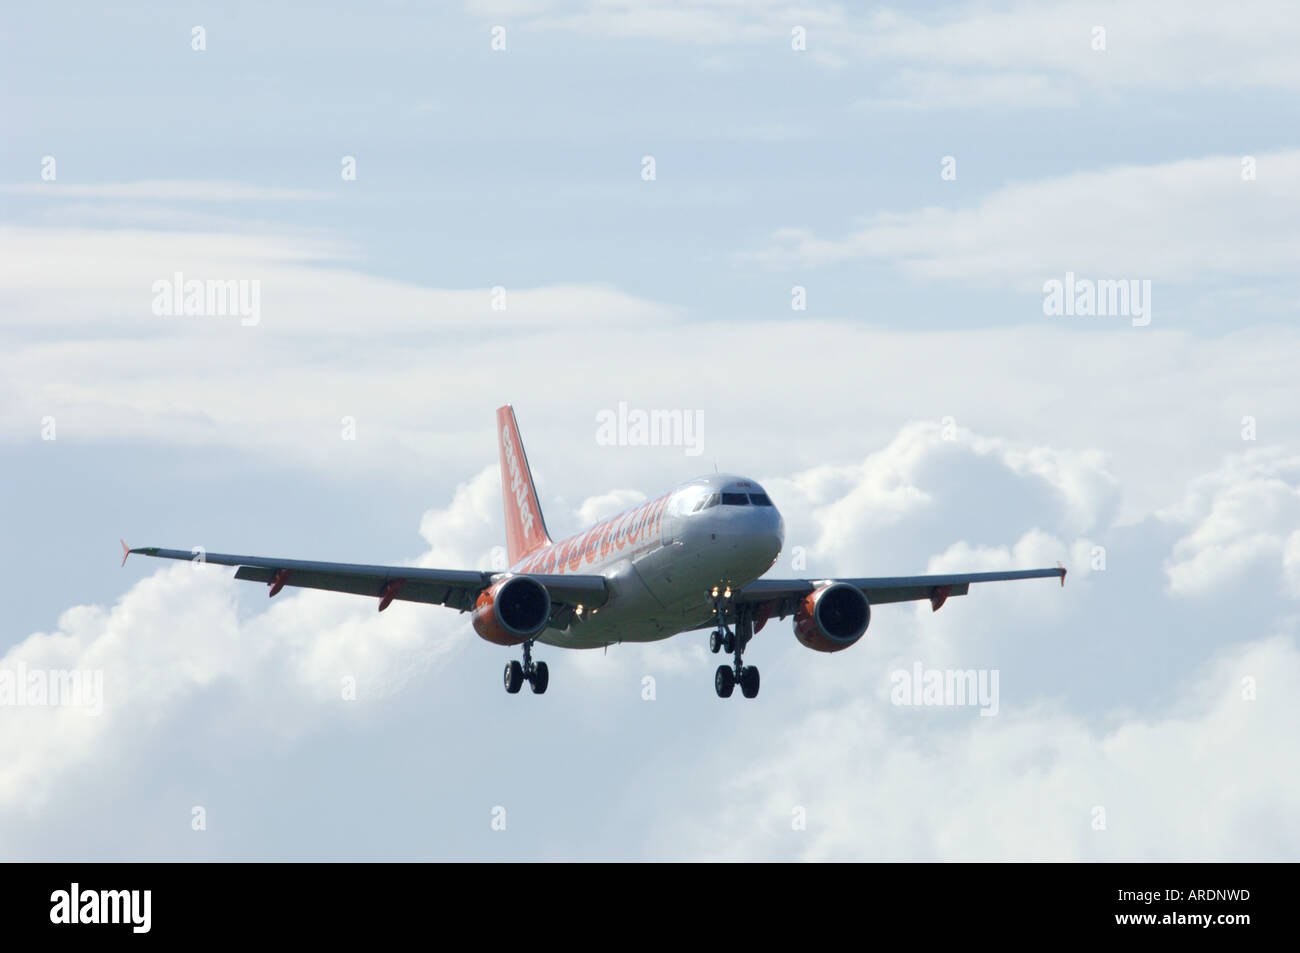 Easy Jet 737-700 London flight arriving at Inverness Airport.  XAV 3571-347 - Stock Image